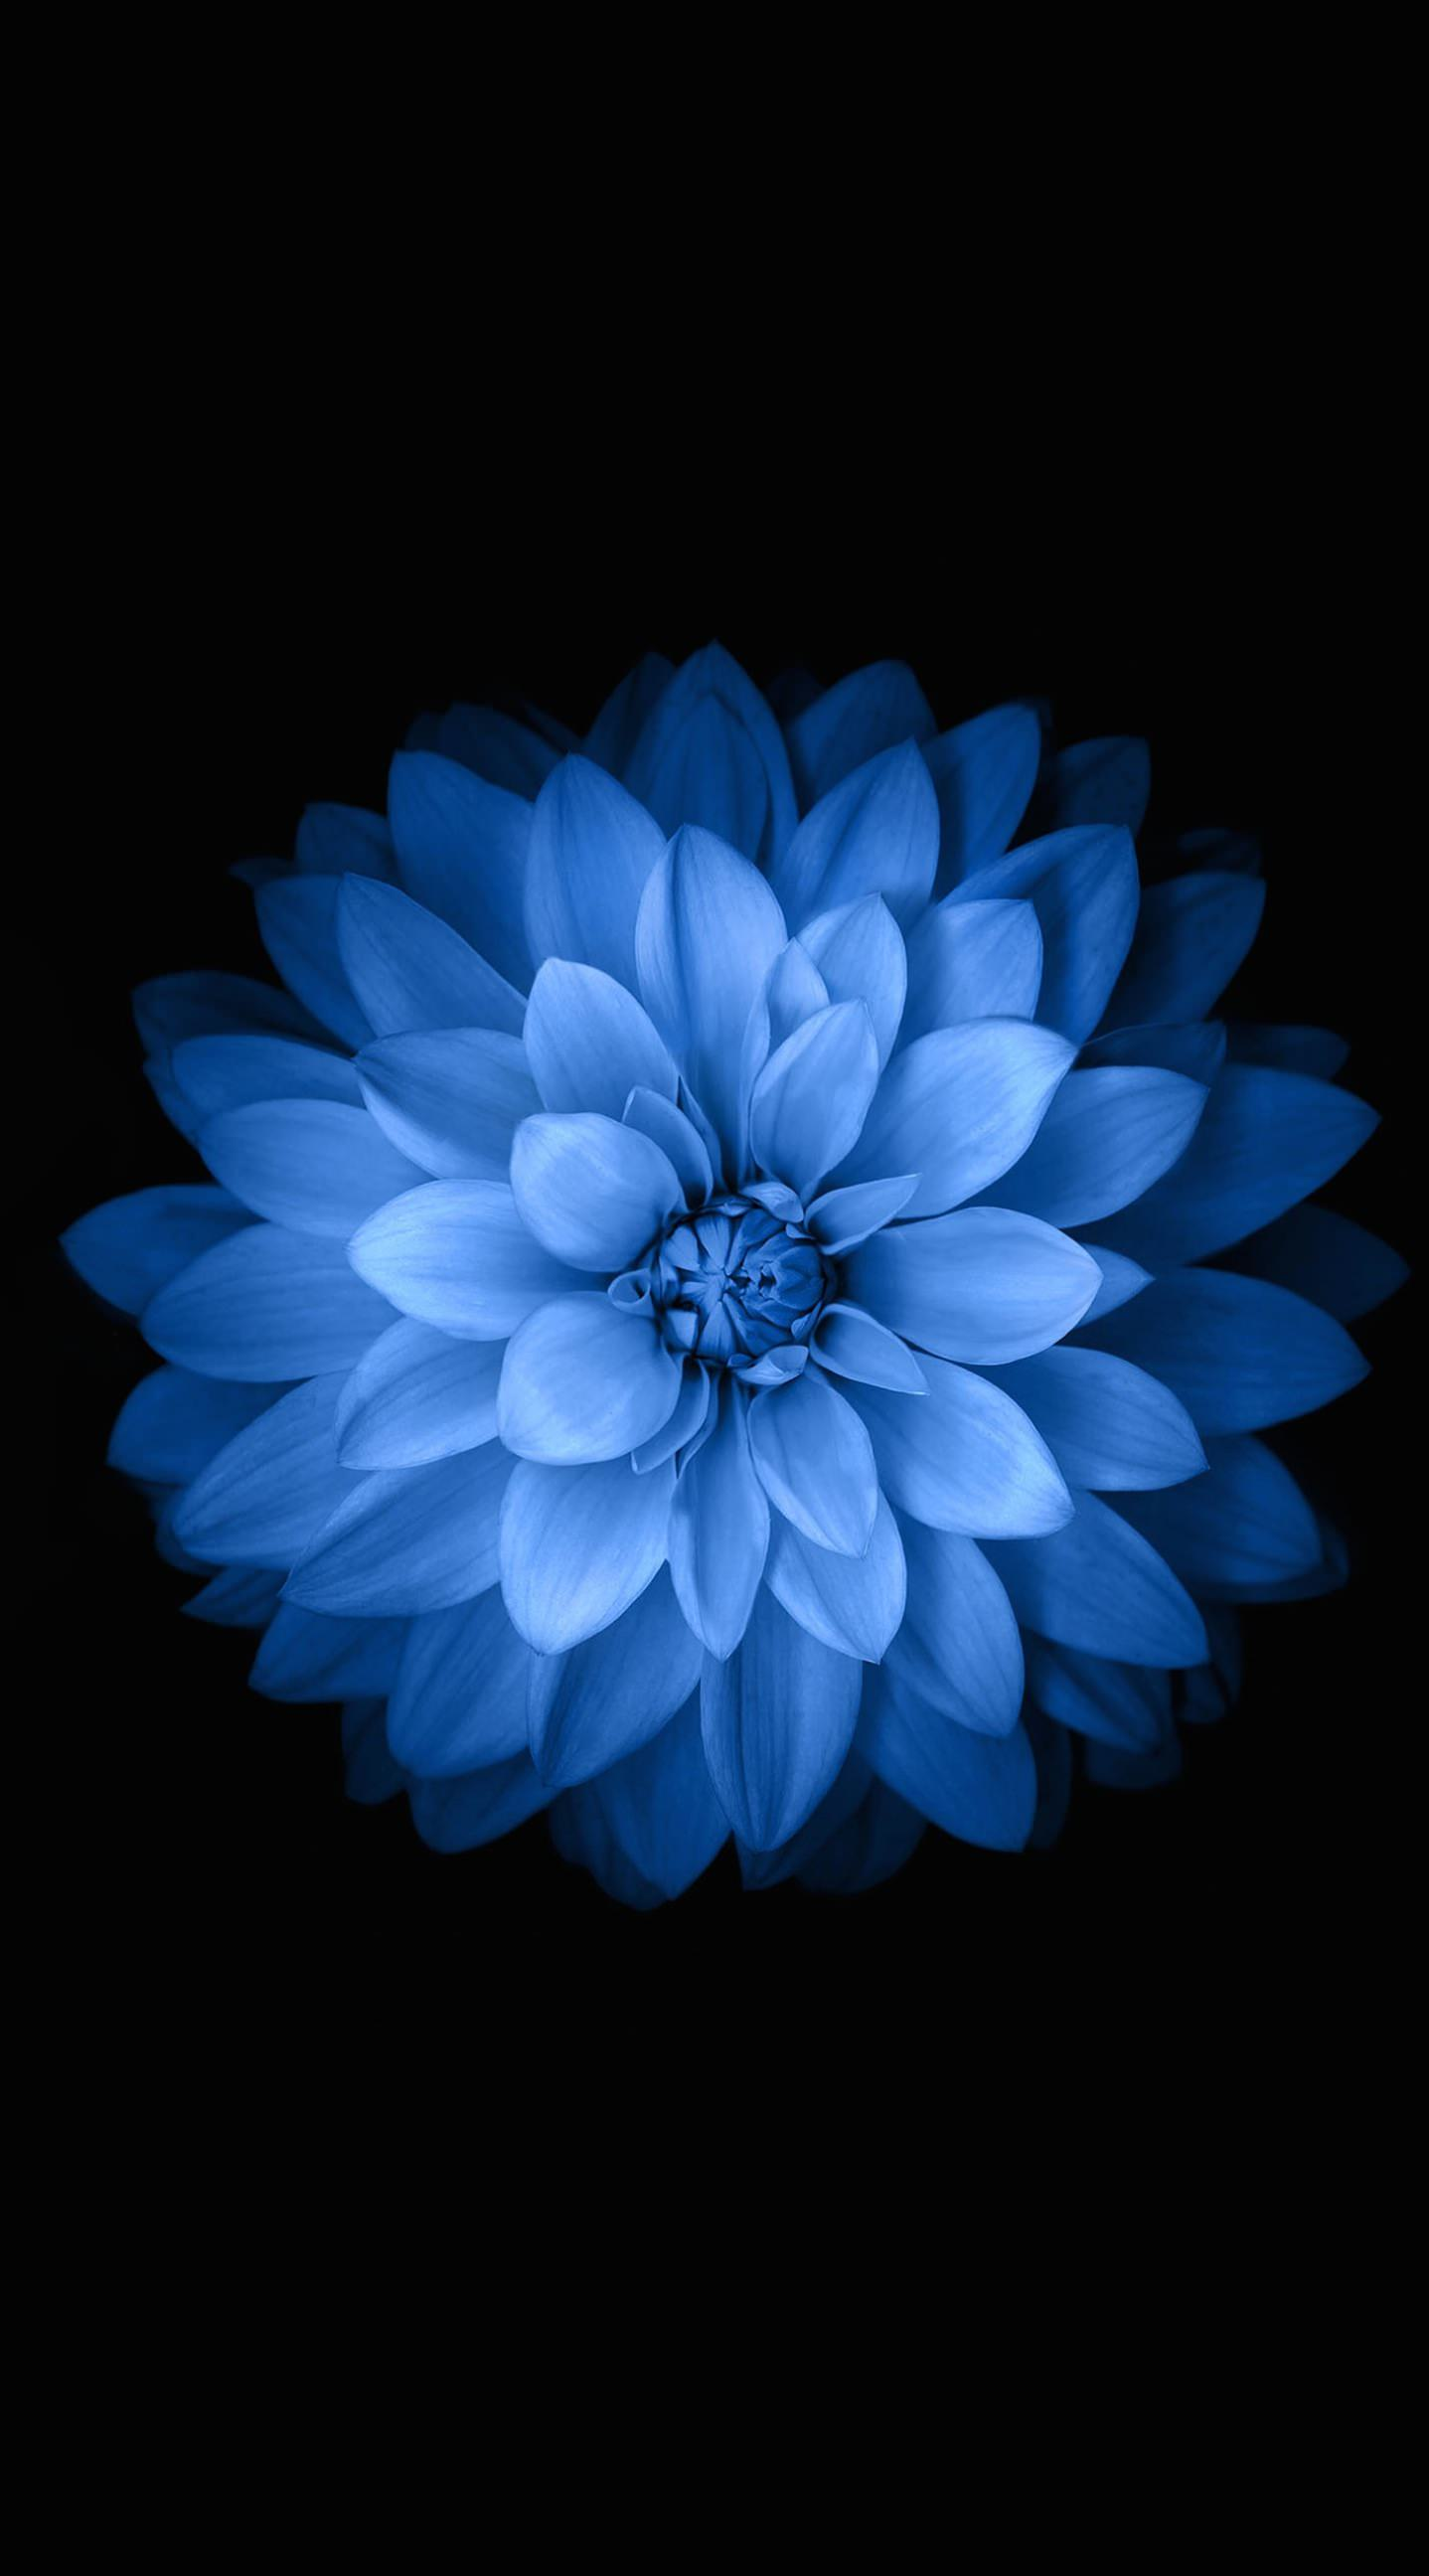 blue black flower iphone6splus